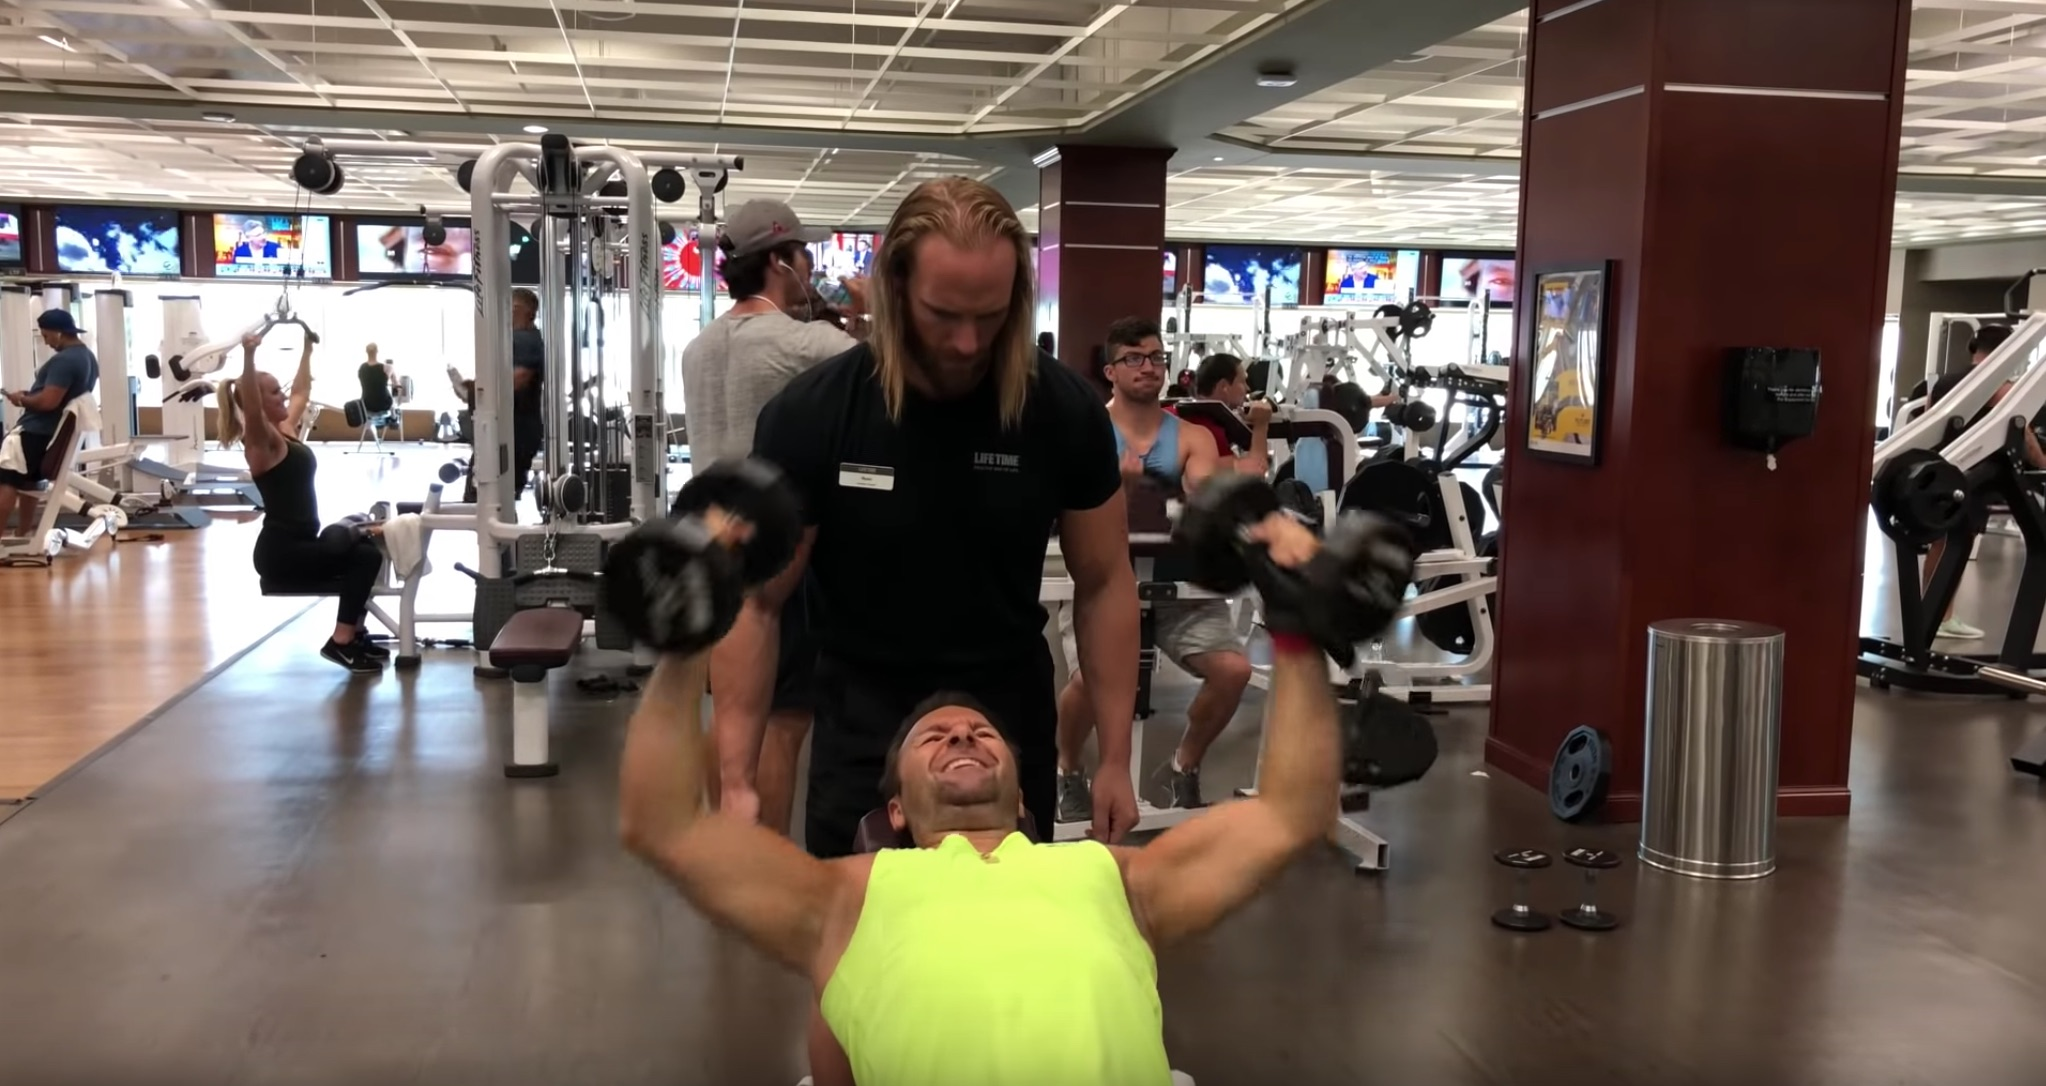 Daniel Negreanu hitting the weights hard in his recent vlog to get ready for the upcoming NHL season.